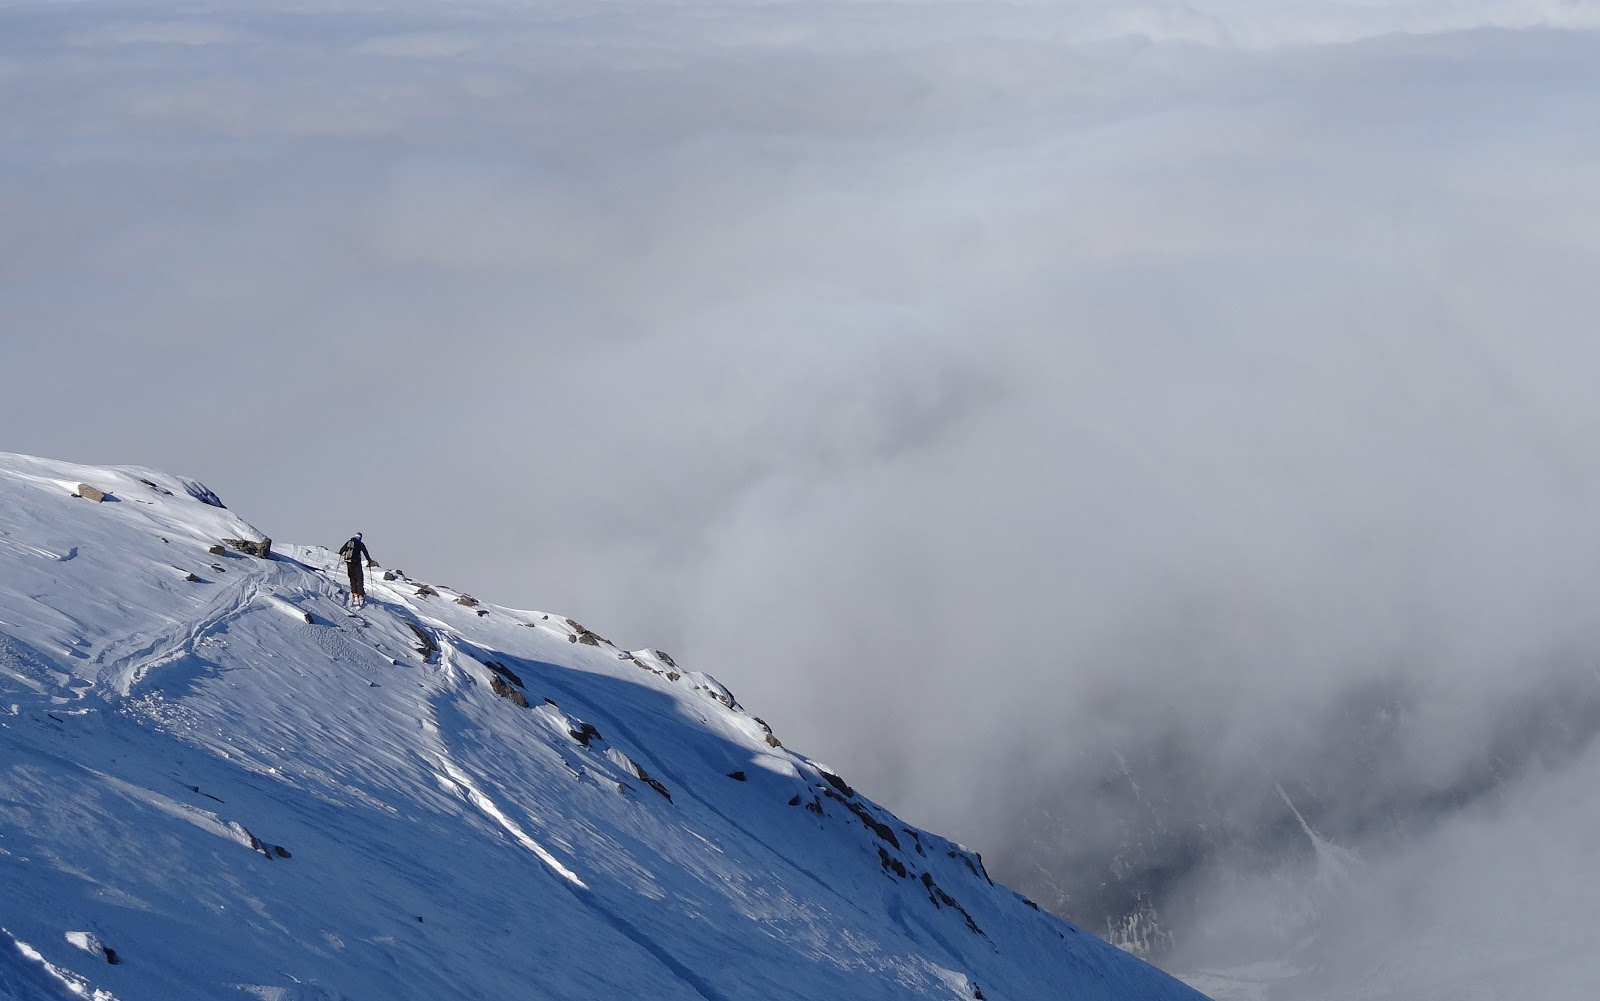 Will Eaton skiing above the clouds.